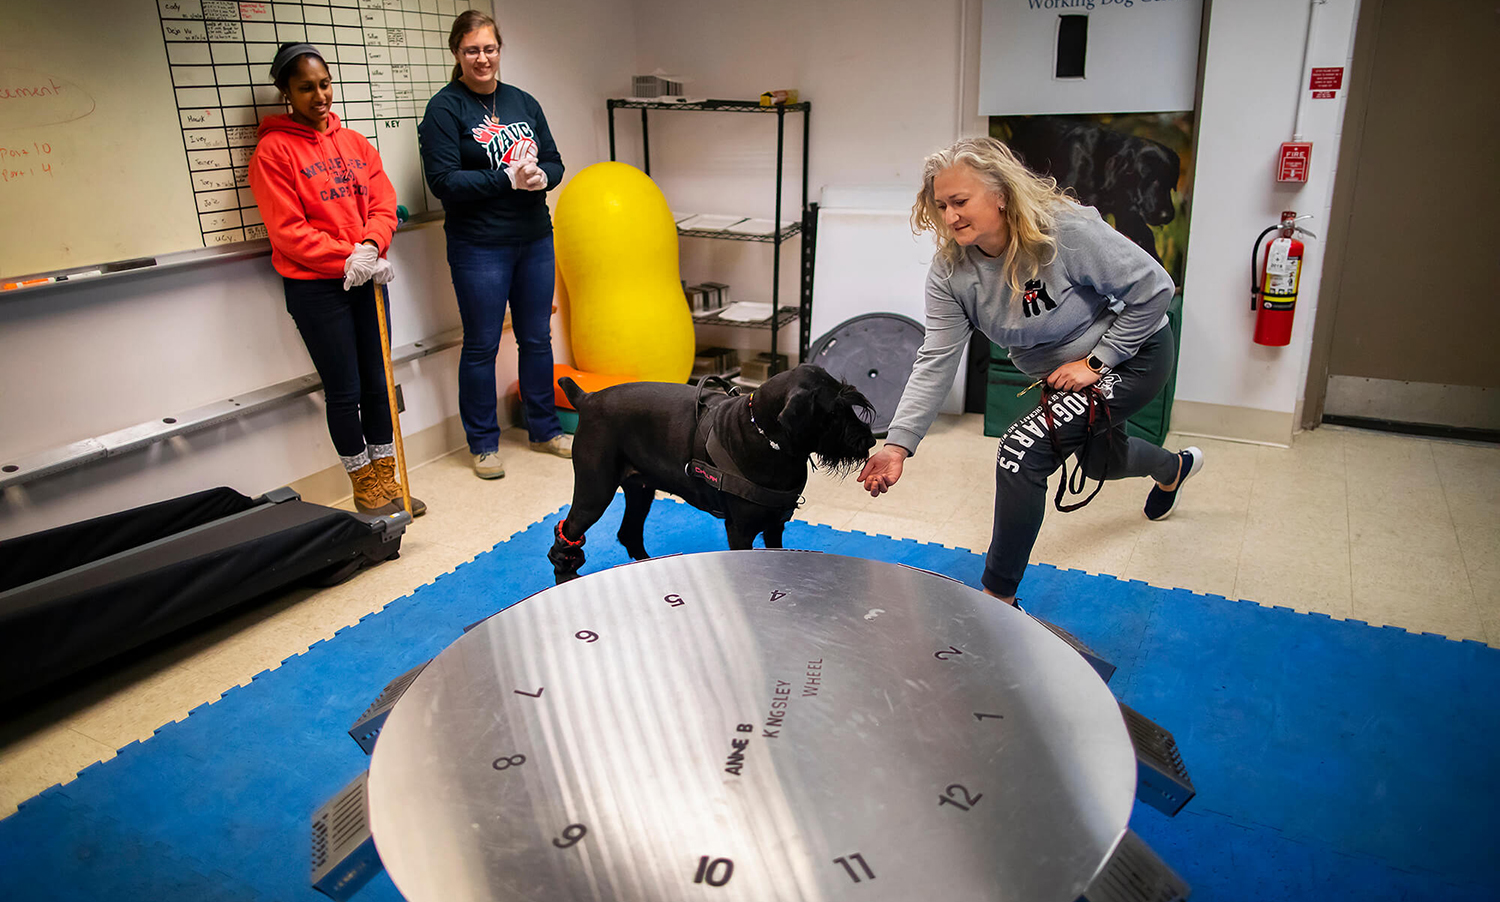 Challah, a giant schnauzer with a gifted nose, receives a treat from owner Anastasia Ayzenberg after a successful search at the scent wheel as instructor Tessa Seales and volunteer Shelby Wise look on.